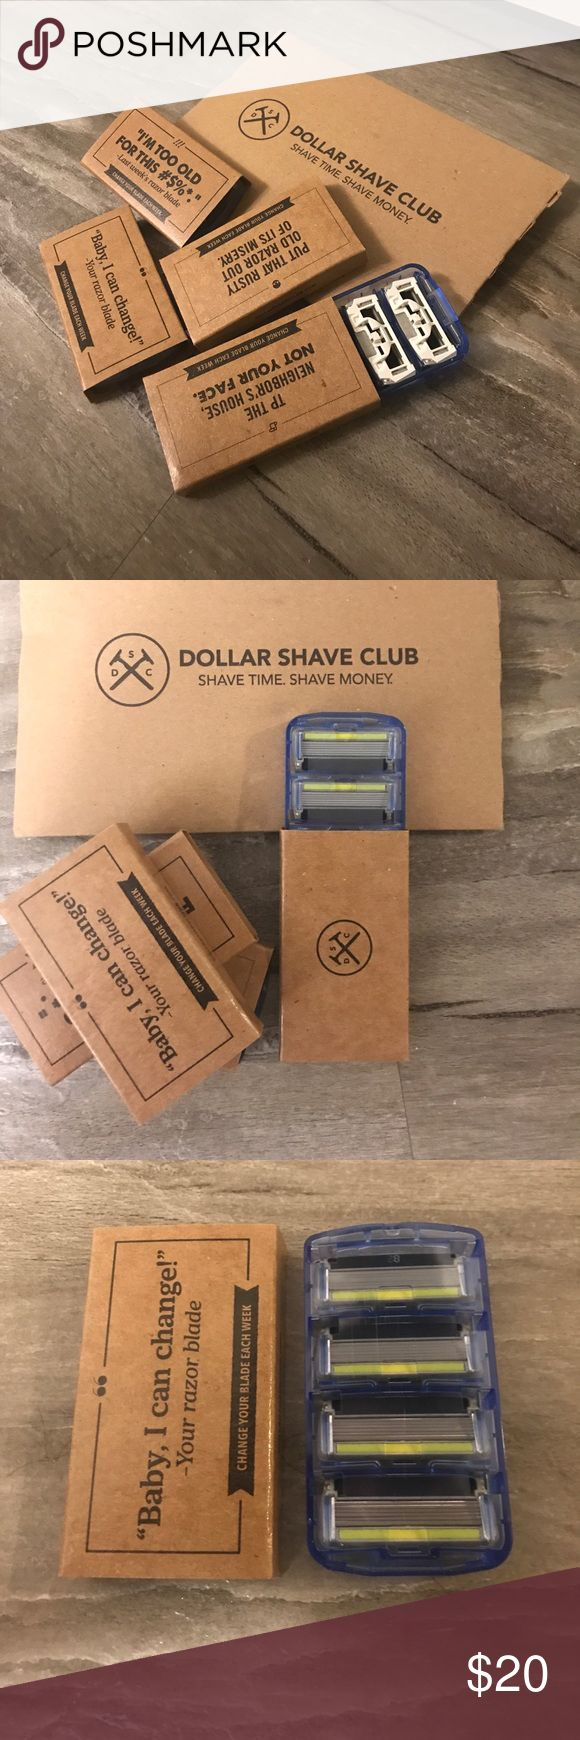 Dollar Shave Club Razor Fills Dollar Shave Club Razor Fills. Brand newly packed in boxes of 4 razor heads. $20 for all four boxes. dollar shave club Other